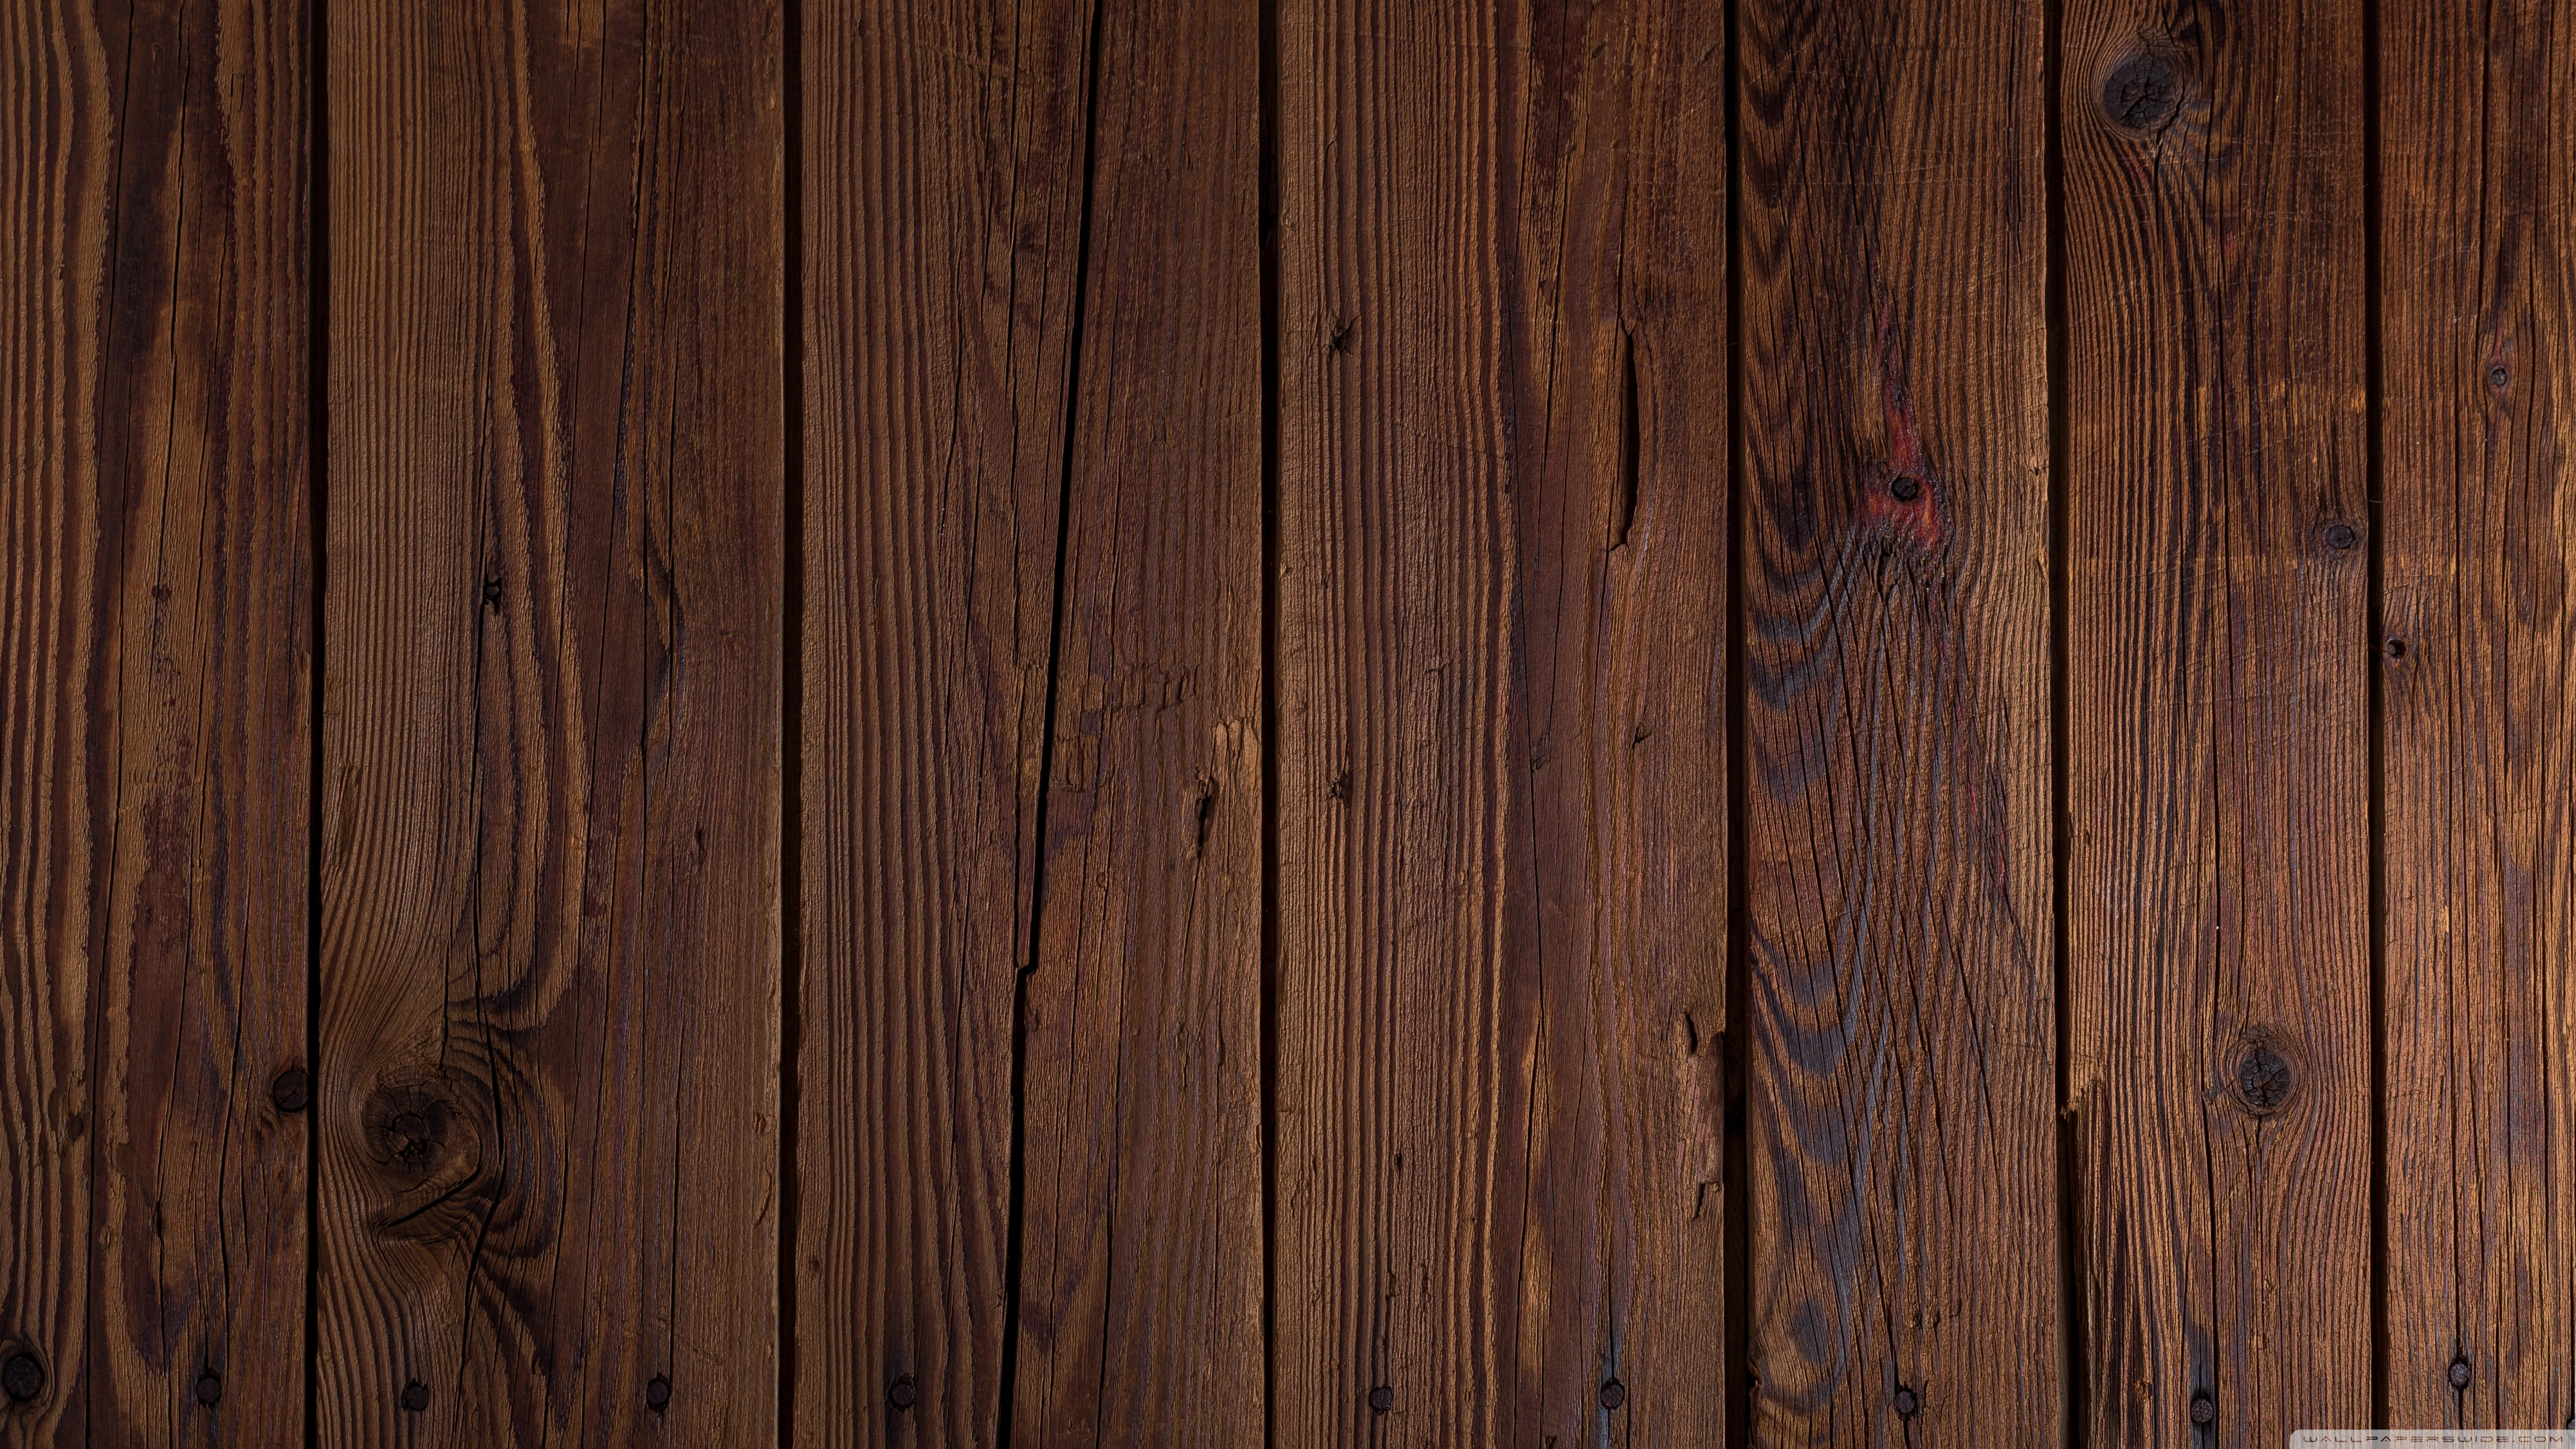 wood background ❤ 4k hd desktop wallpaper for 4k ultra hd tv • wide